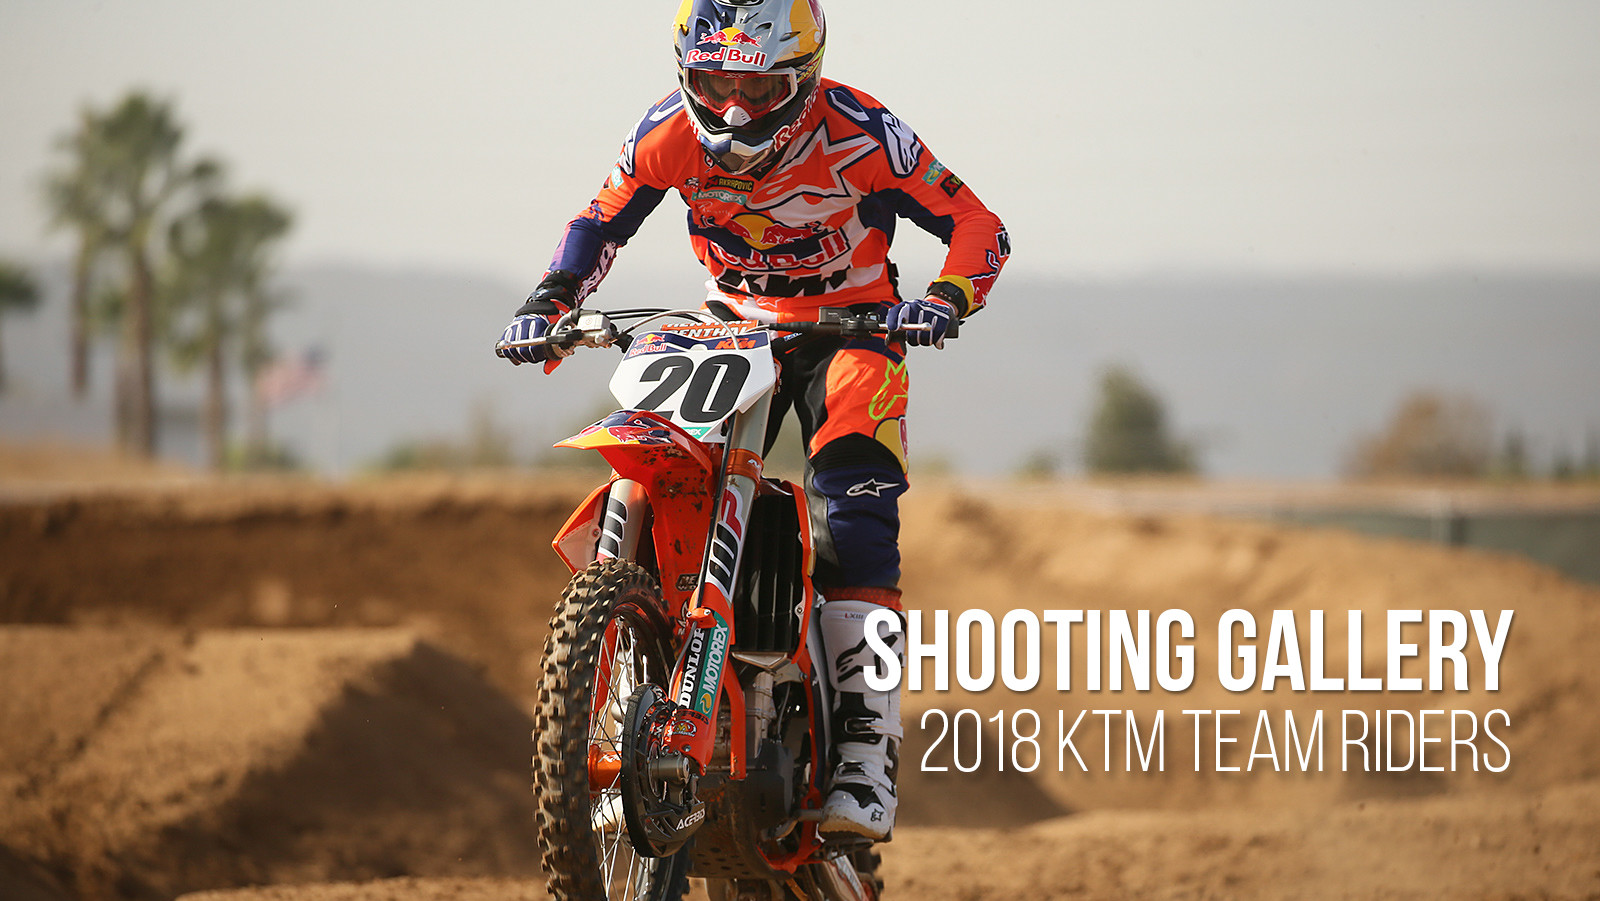 Shooting Gallery: 2018 KTM Team Riders